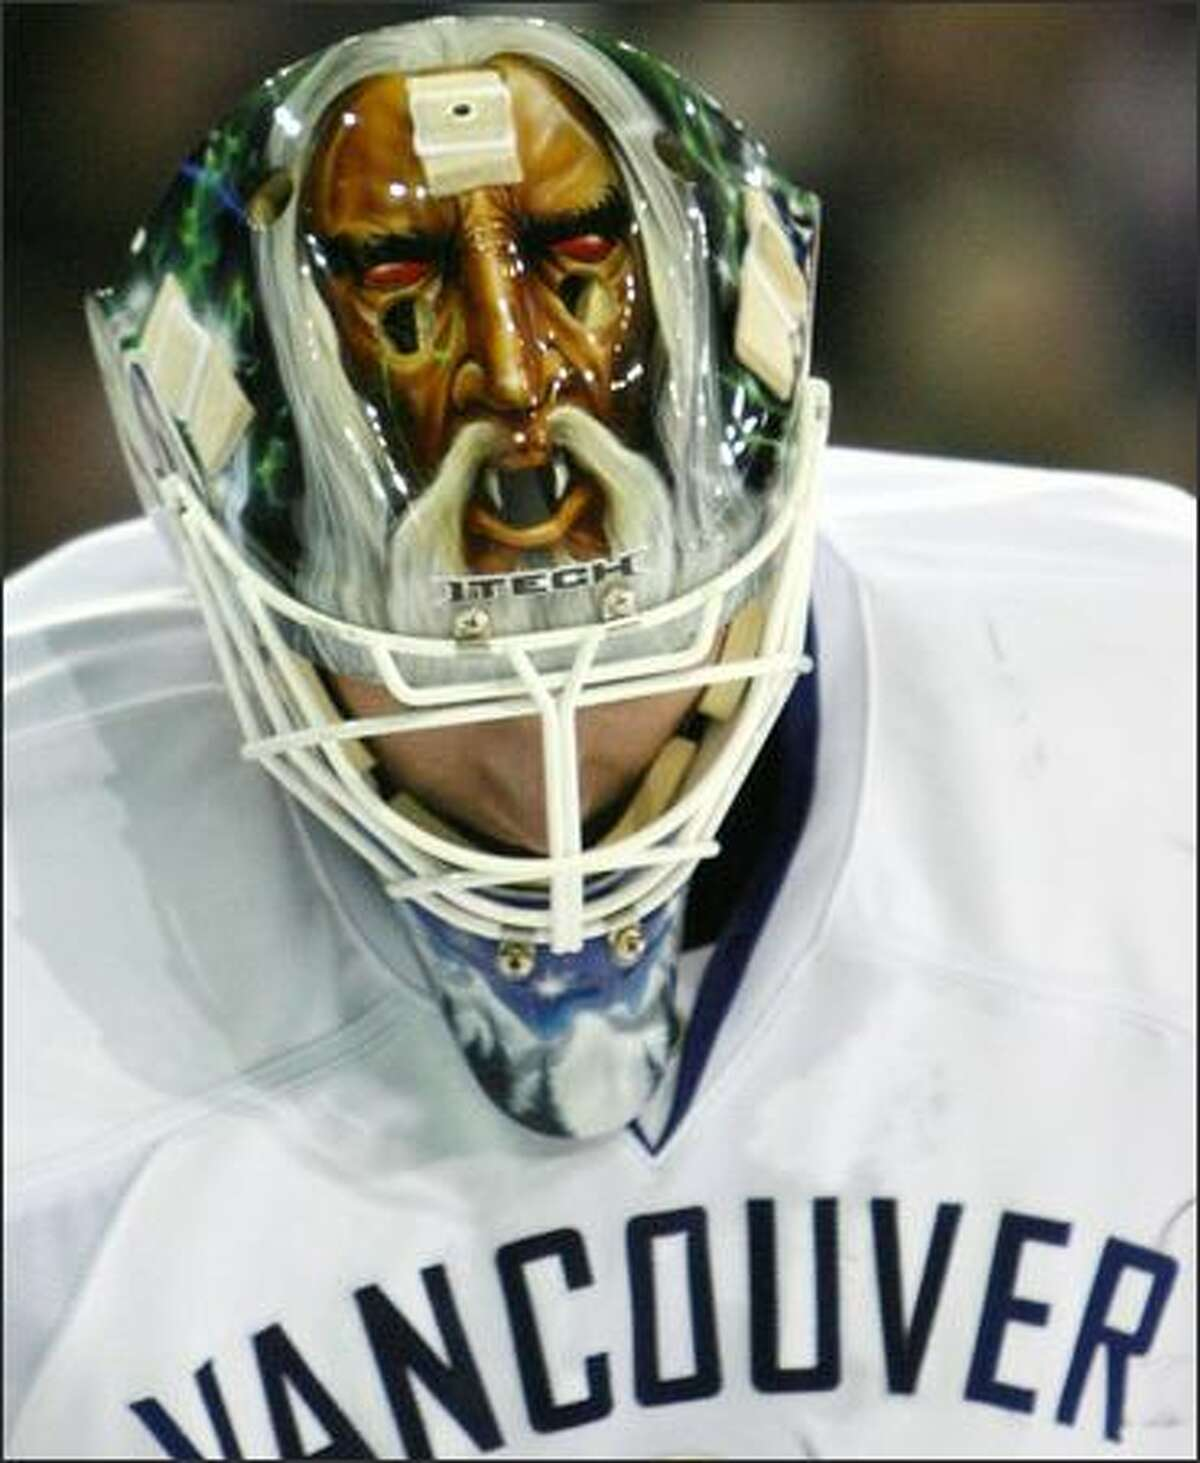 Vancouver Canucks' Curtis Sanford skates to the corner during a break in play against the Edmonton Oilers during second period NHL hockey action in Edmonton on Saturday, Dec. 15, 2007. (AP Photo/The Canadian Press via The Edmonton Sun, Darryl Dyck)